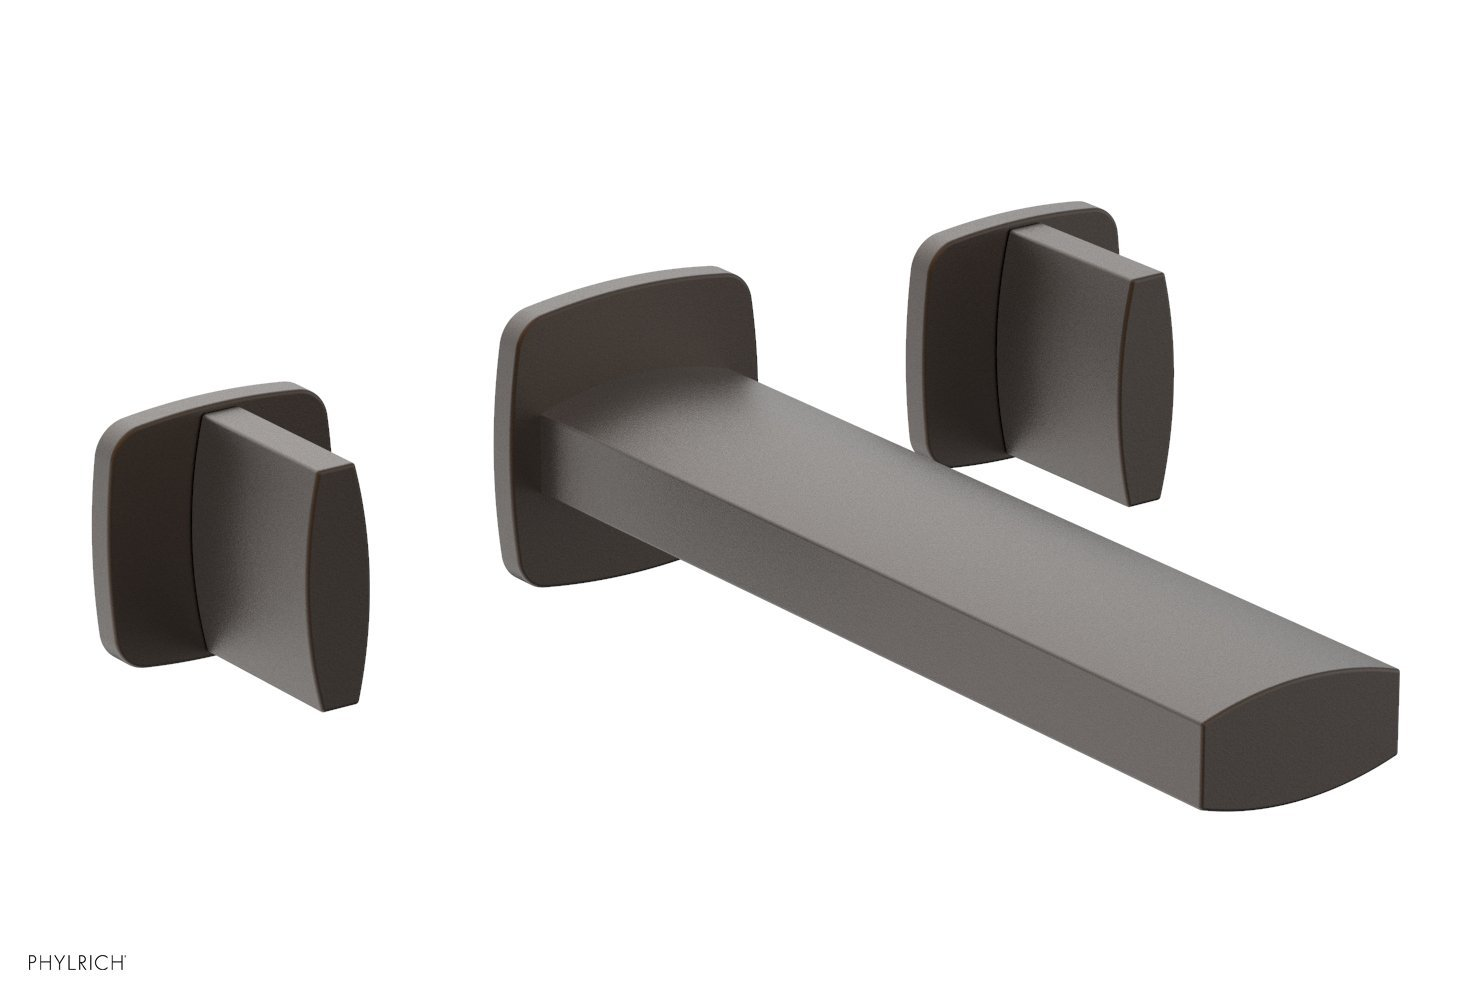 Phylrich 181-11-10B RADI Wall Lavatory Set - Blade Handles - Oil Rubbed Bronze